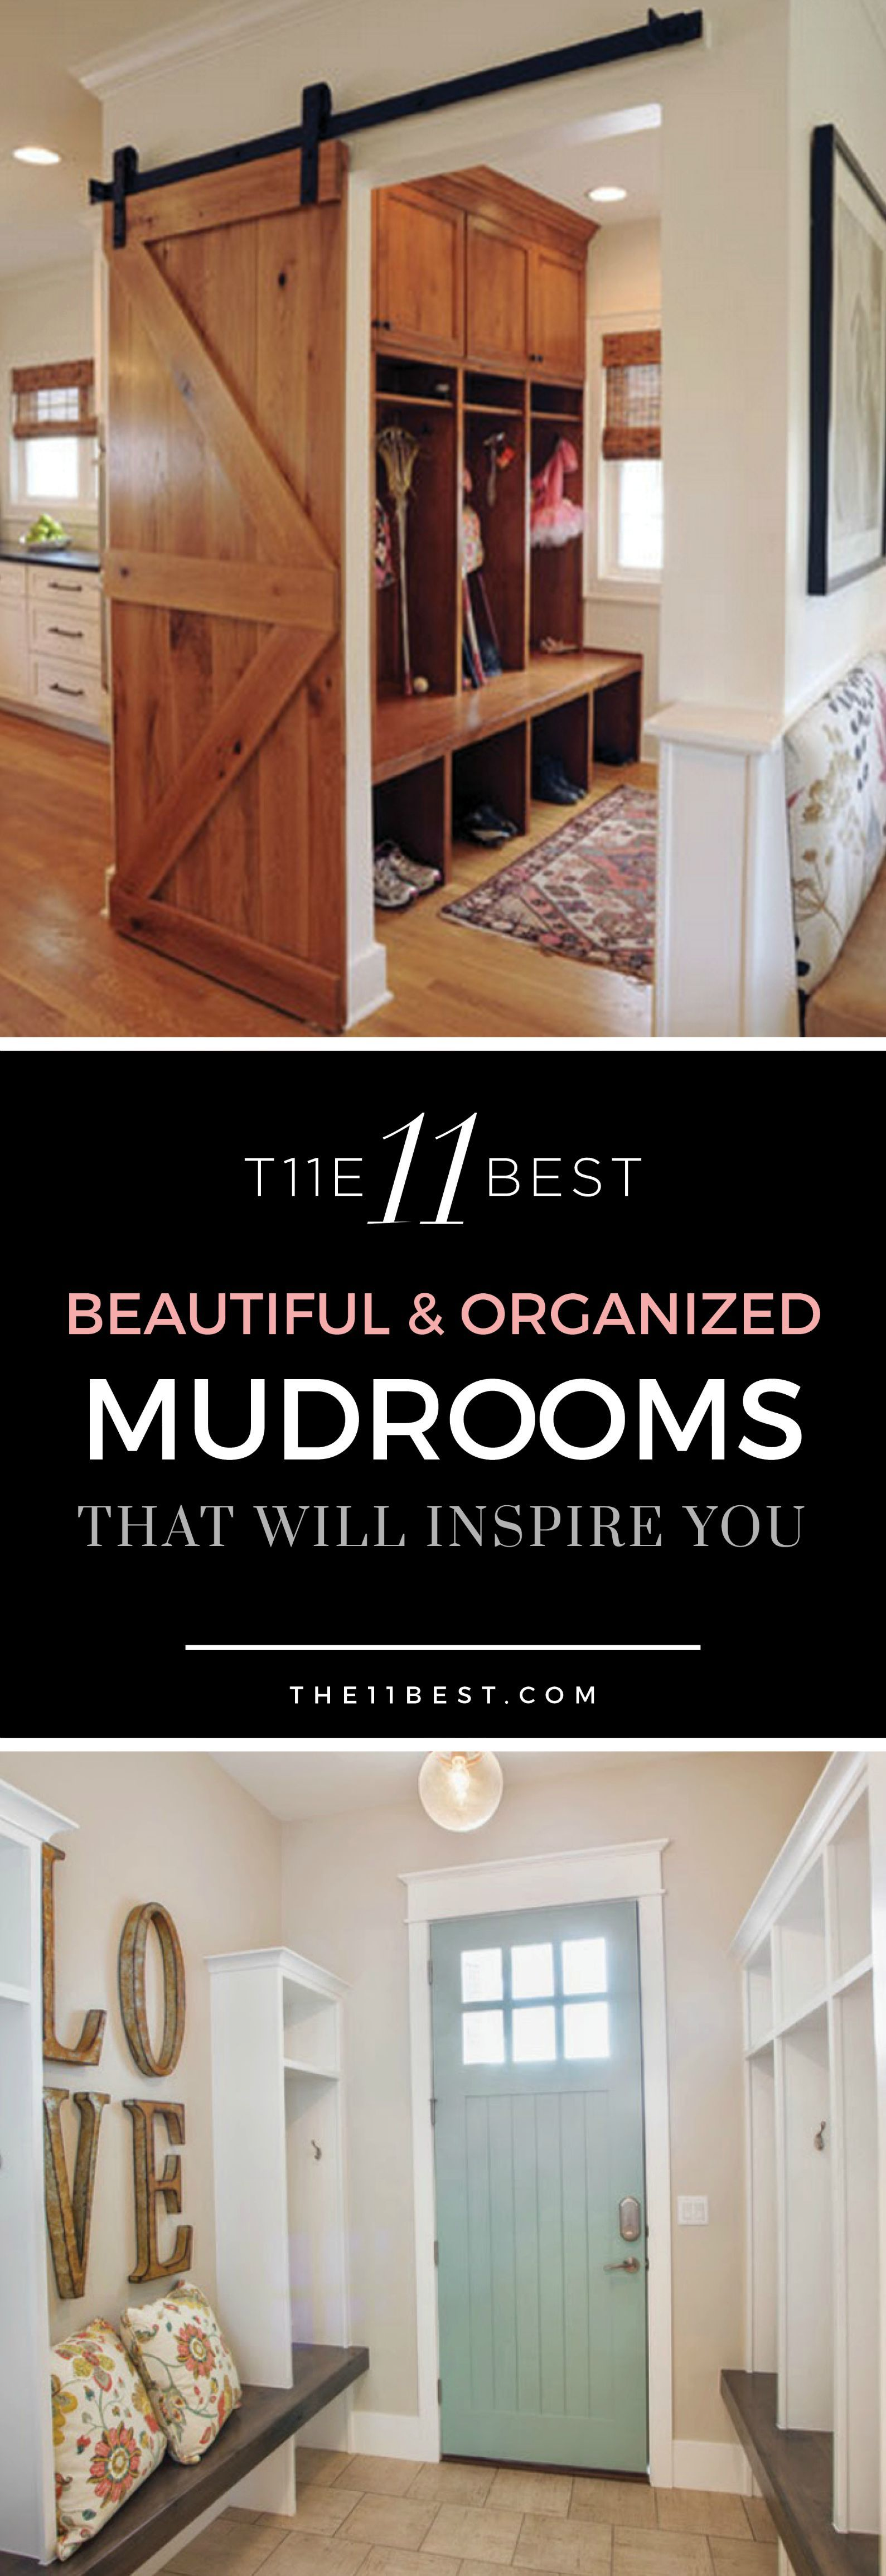 The 11 Best Mudrooms Home Remodeling Home New Homes